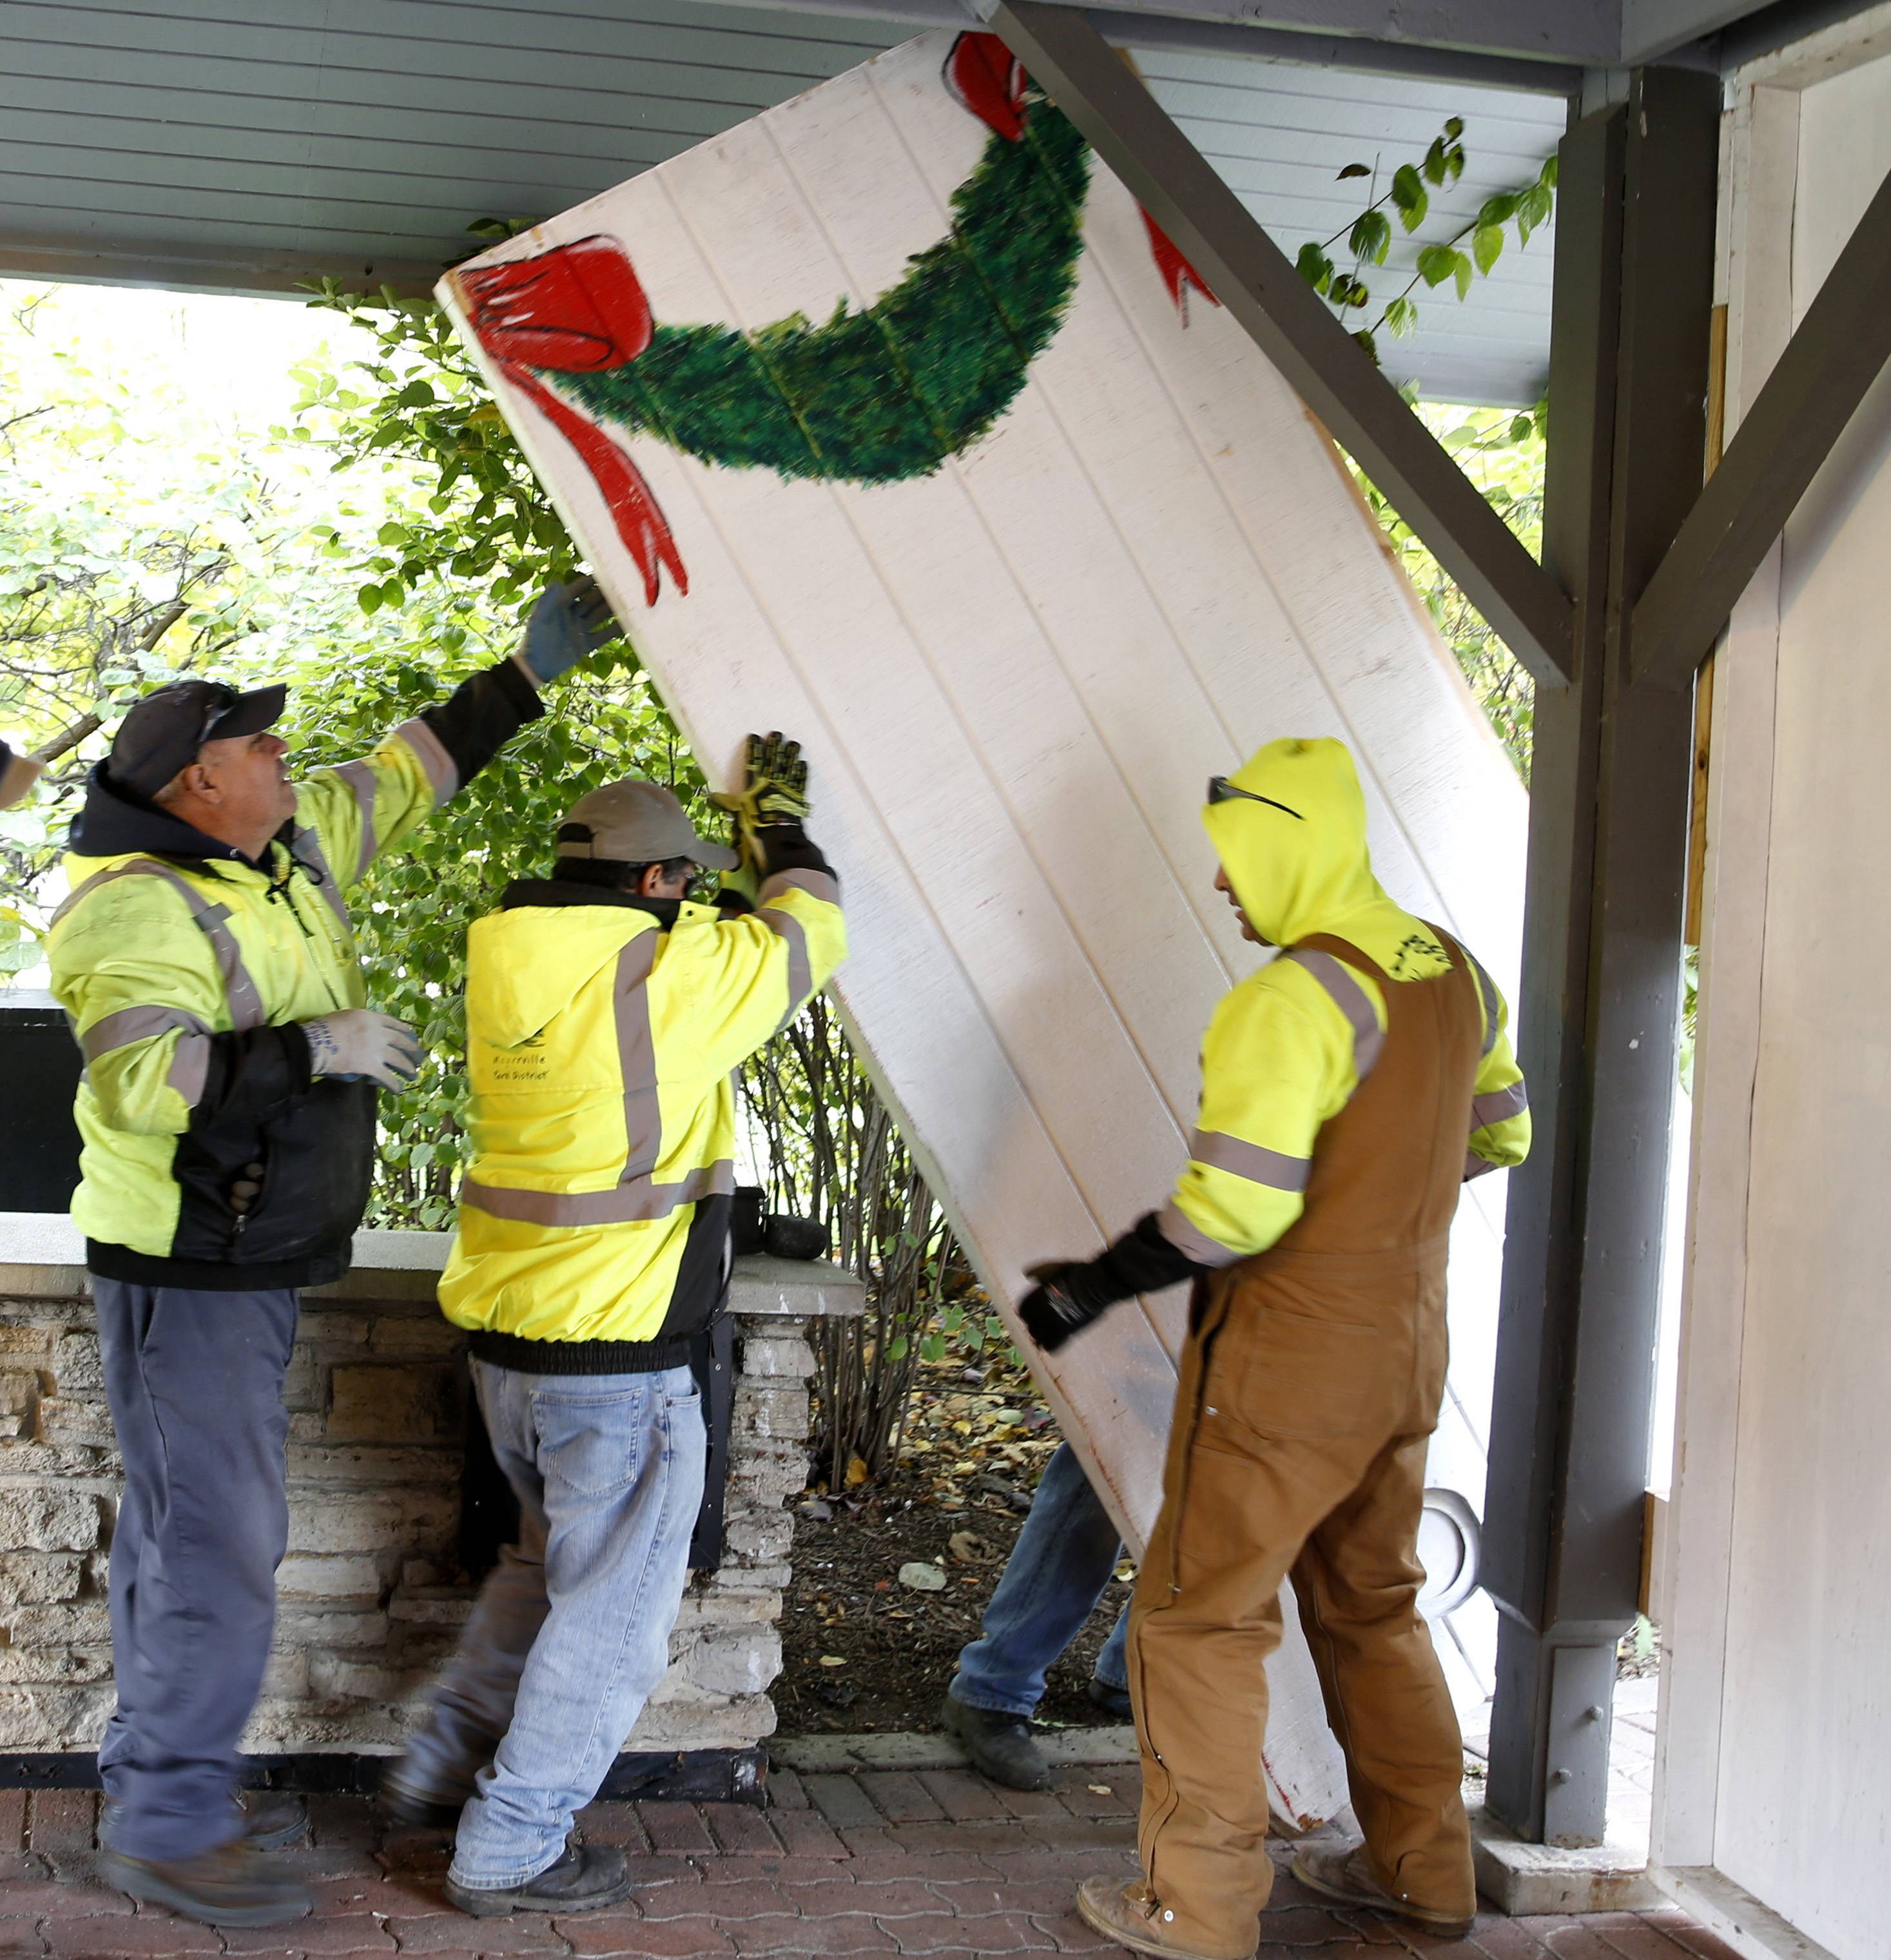 Santa won't arrive for several more weeks, but Naperville Park District's Santa House already is taking shape along the Riverwalk.